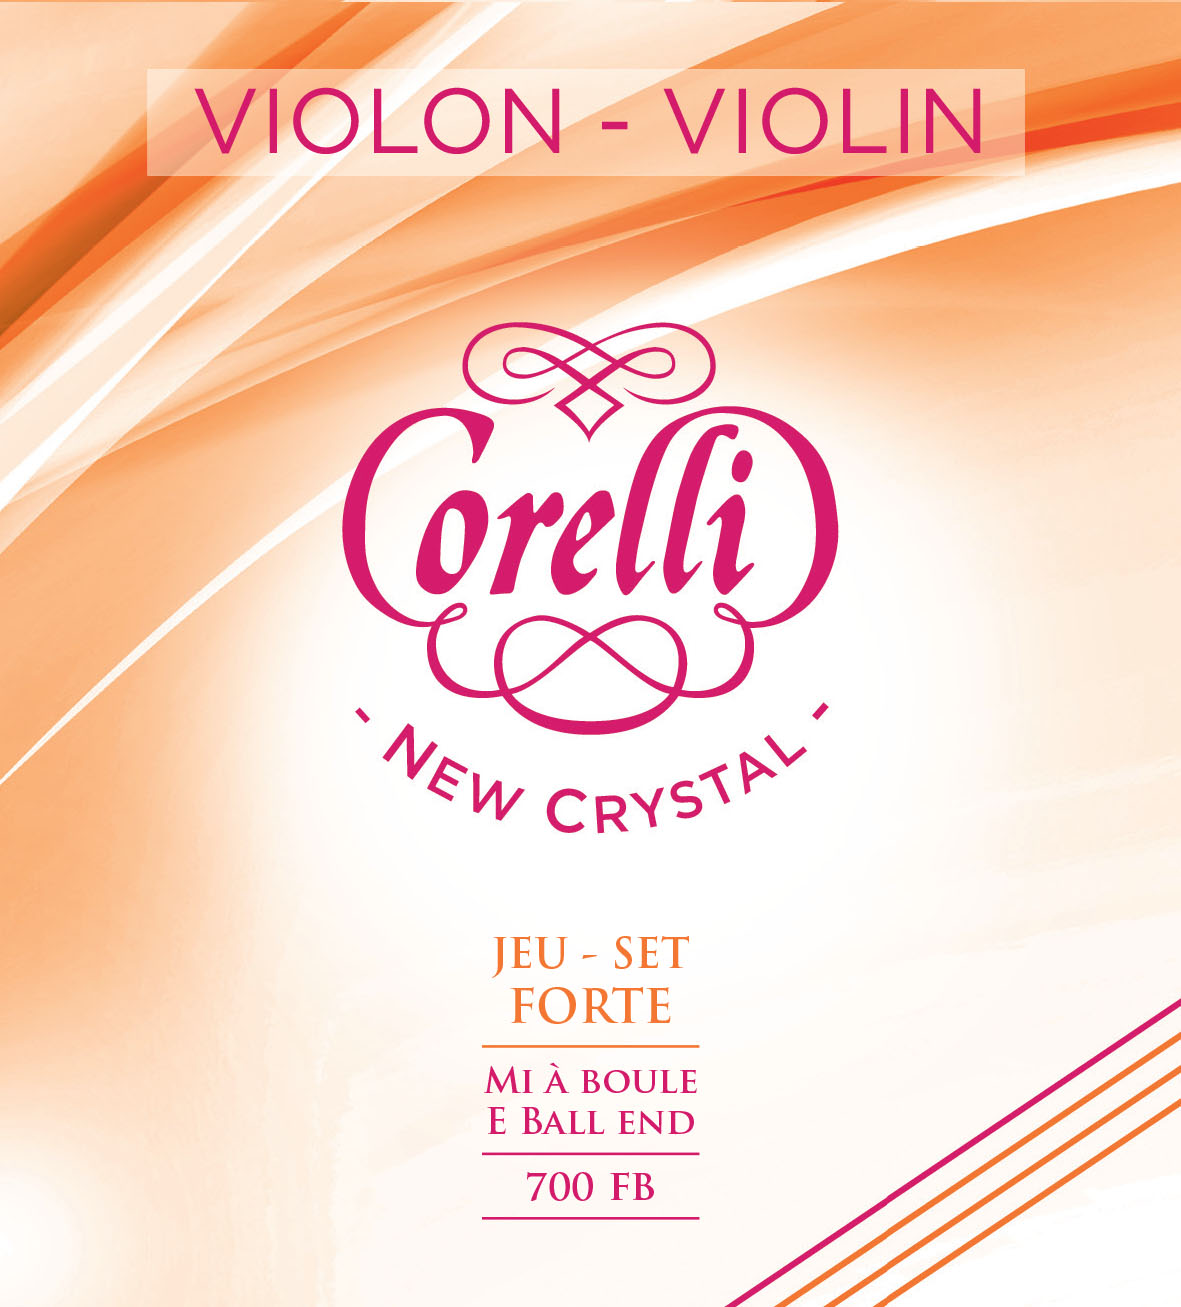 CORELLI NEW CRYSTAL FORTE 700FB Violon